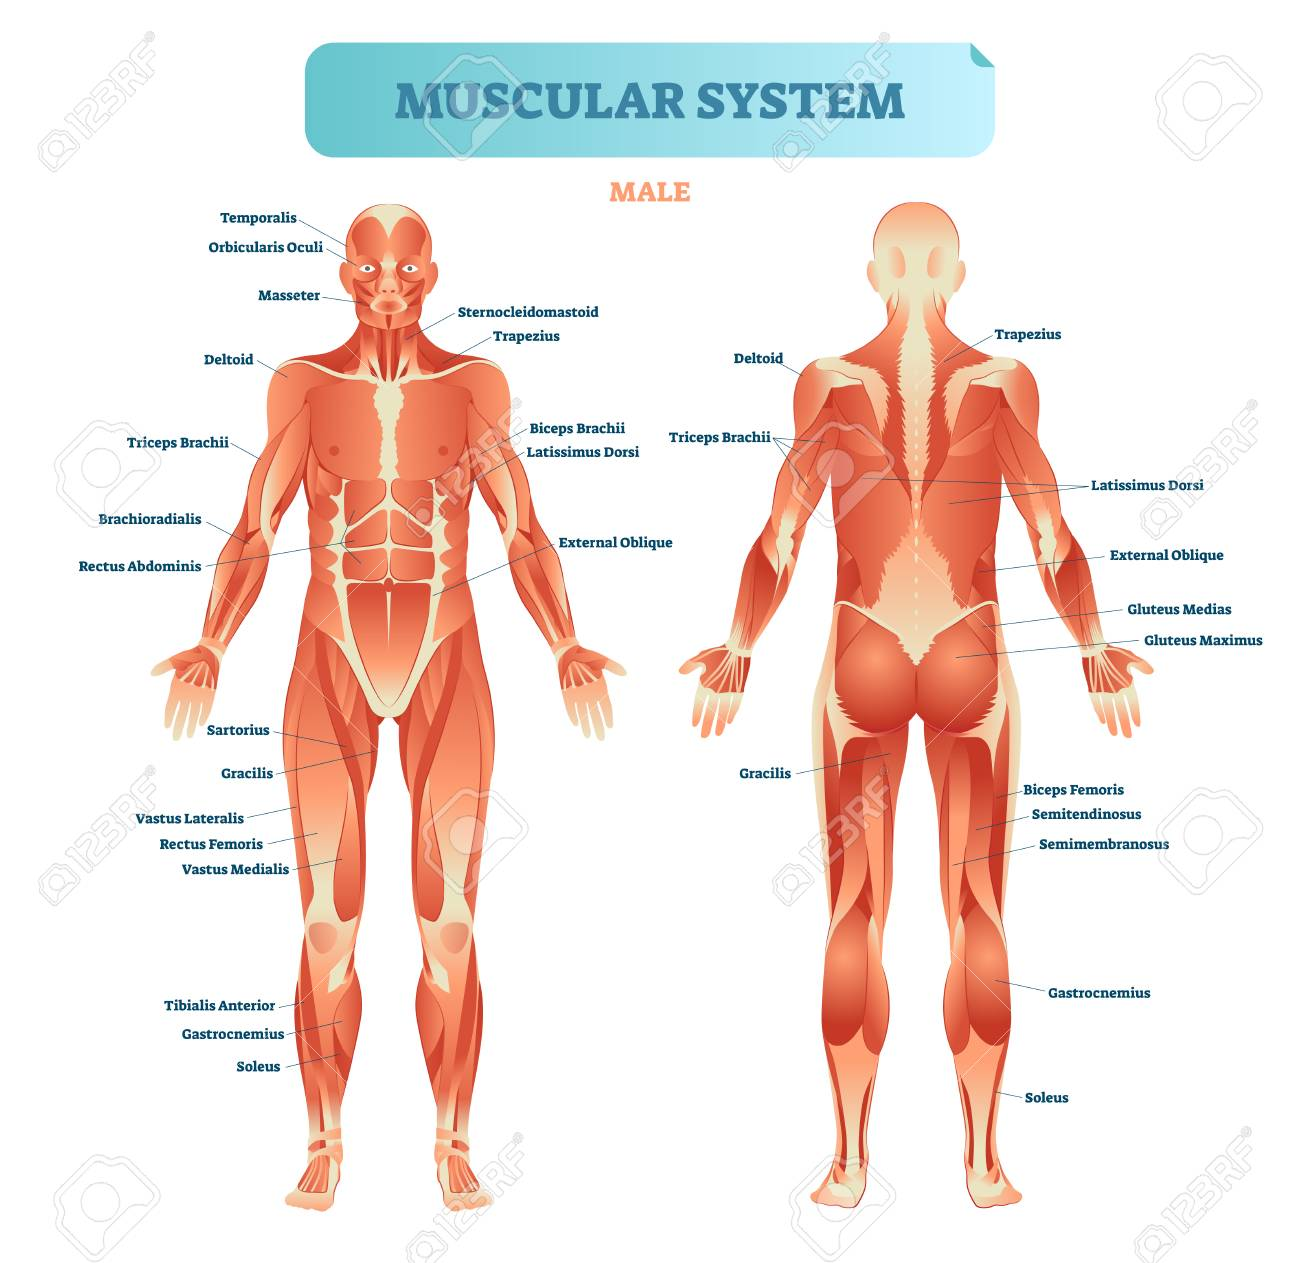 hight resolution of male muscular system full anatomical body diagram with muscle full body diagram of arteries full body diagram